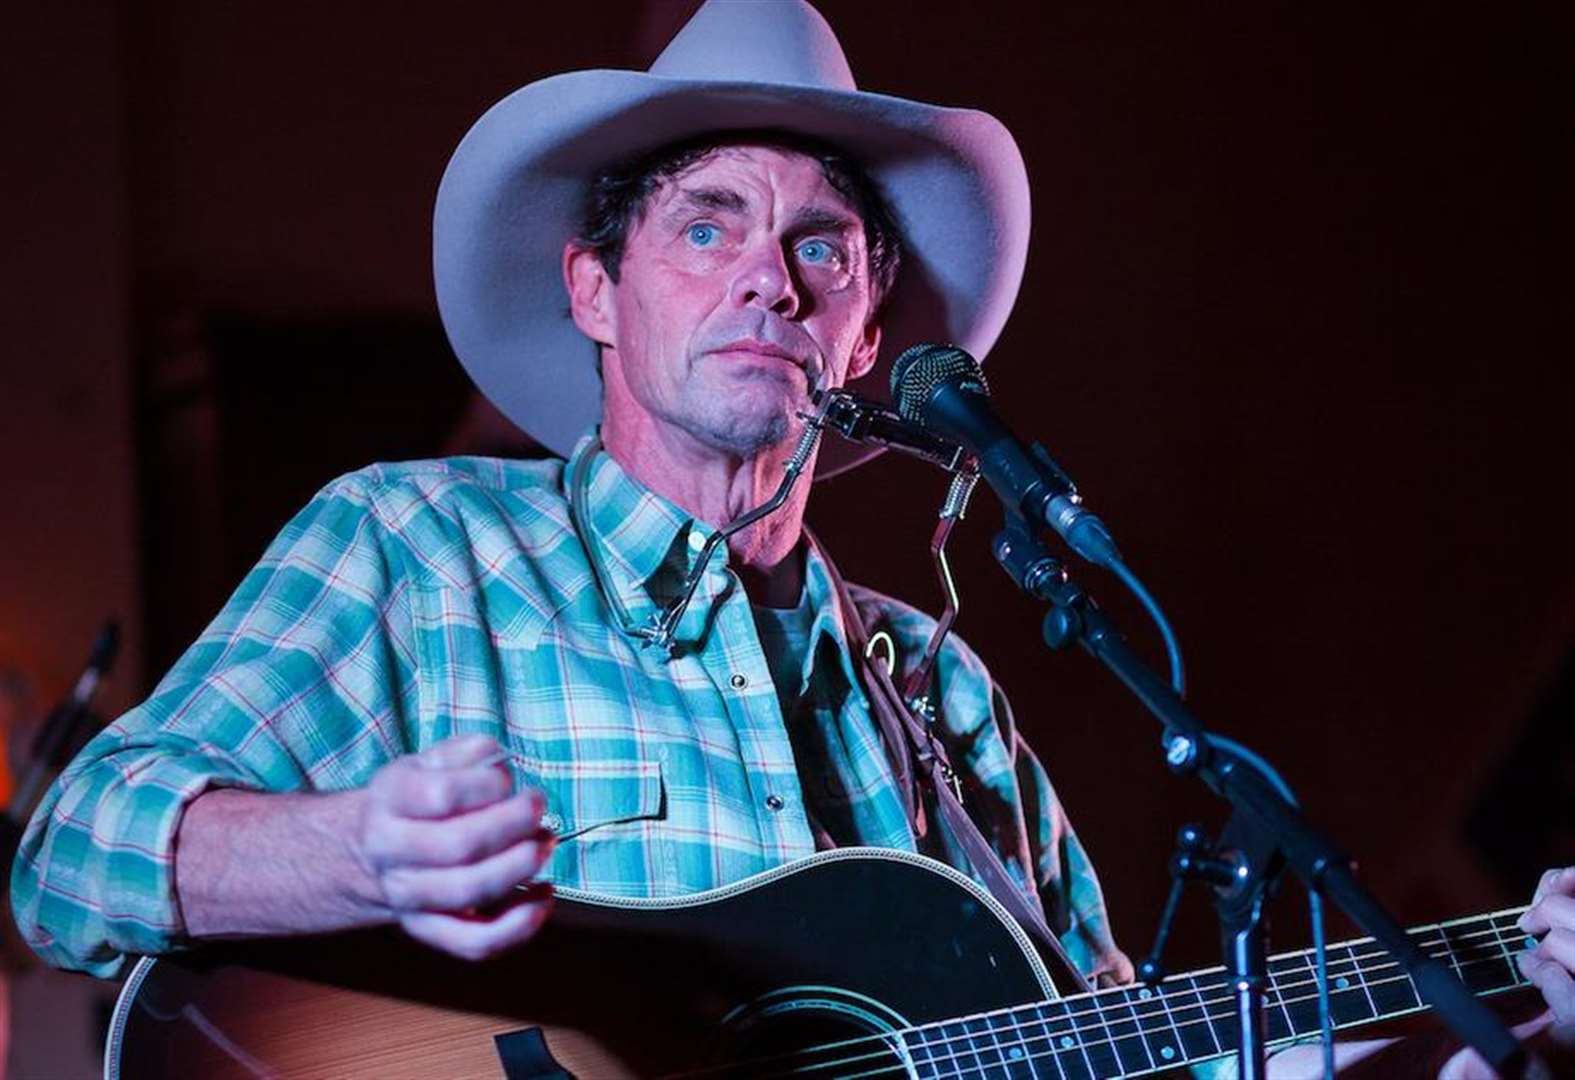 Hilarious, foot-stomping good time to be had with comedian Rich Hall at Rhodes